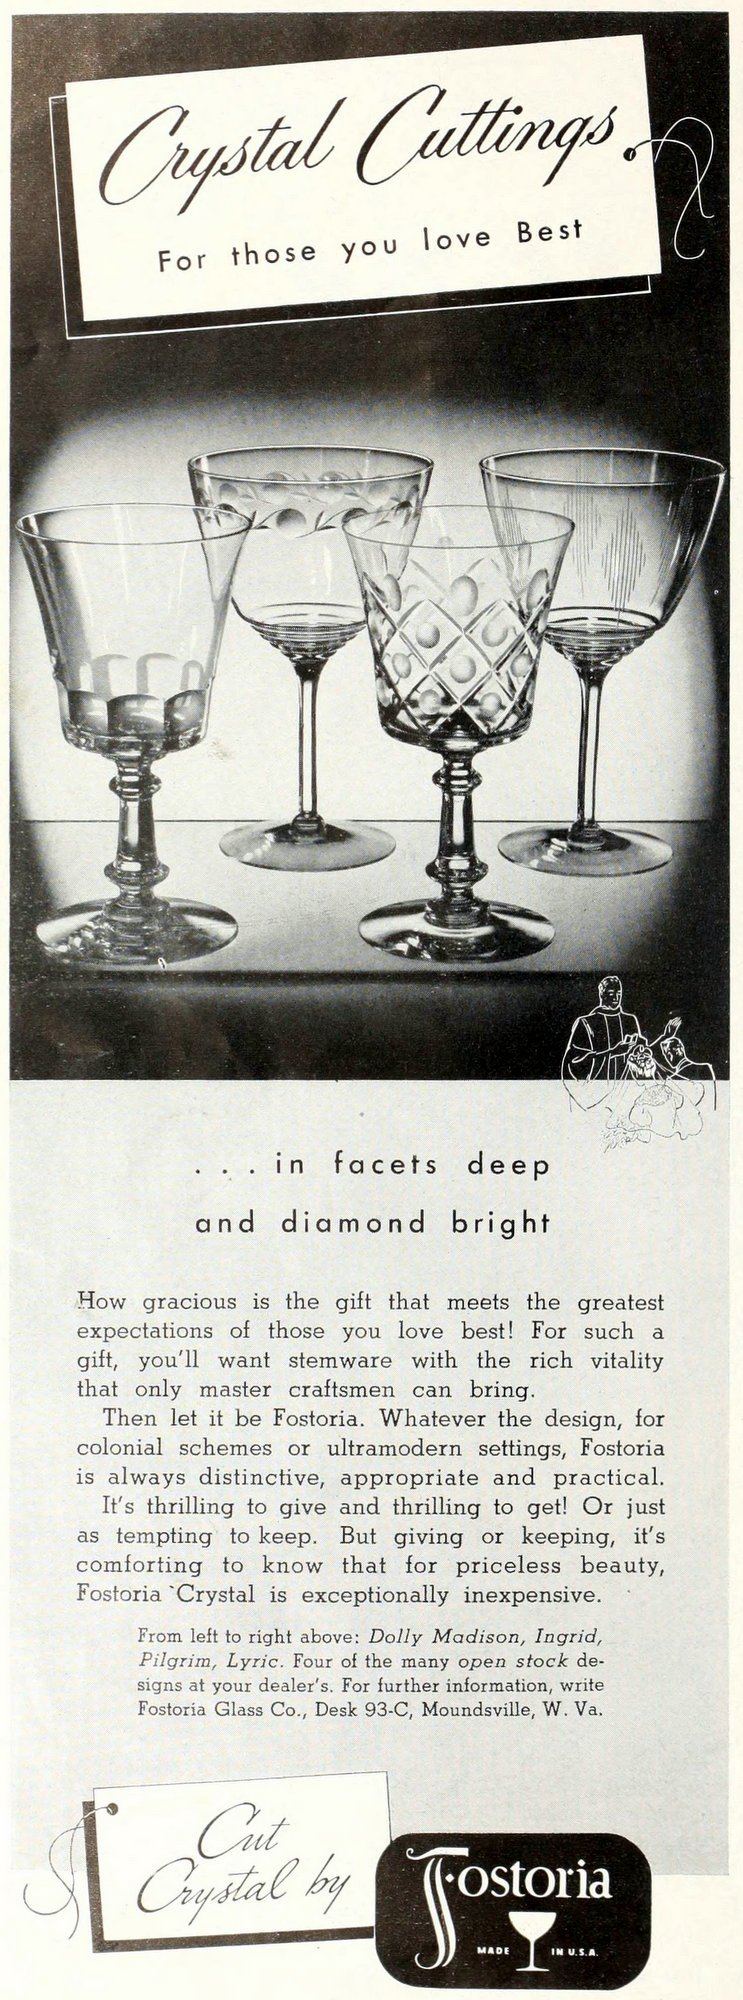 Old fashioned crystal from Fostoria (1939)